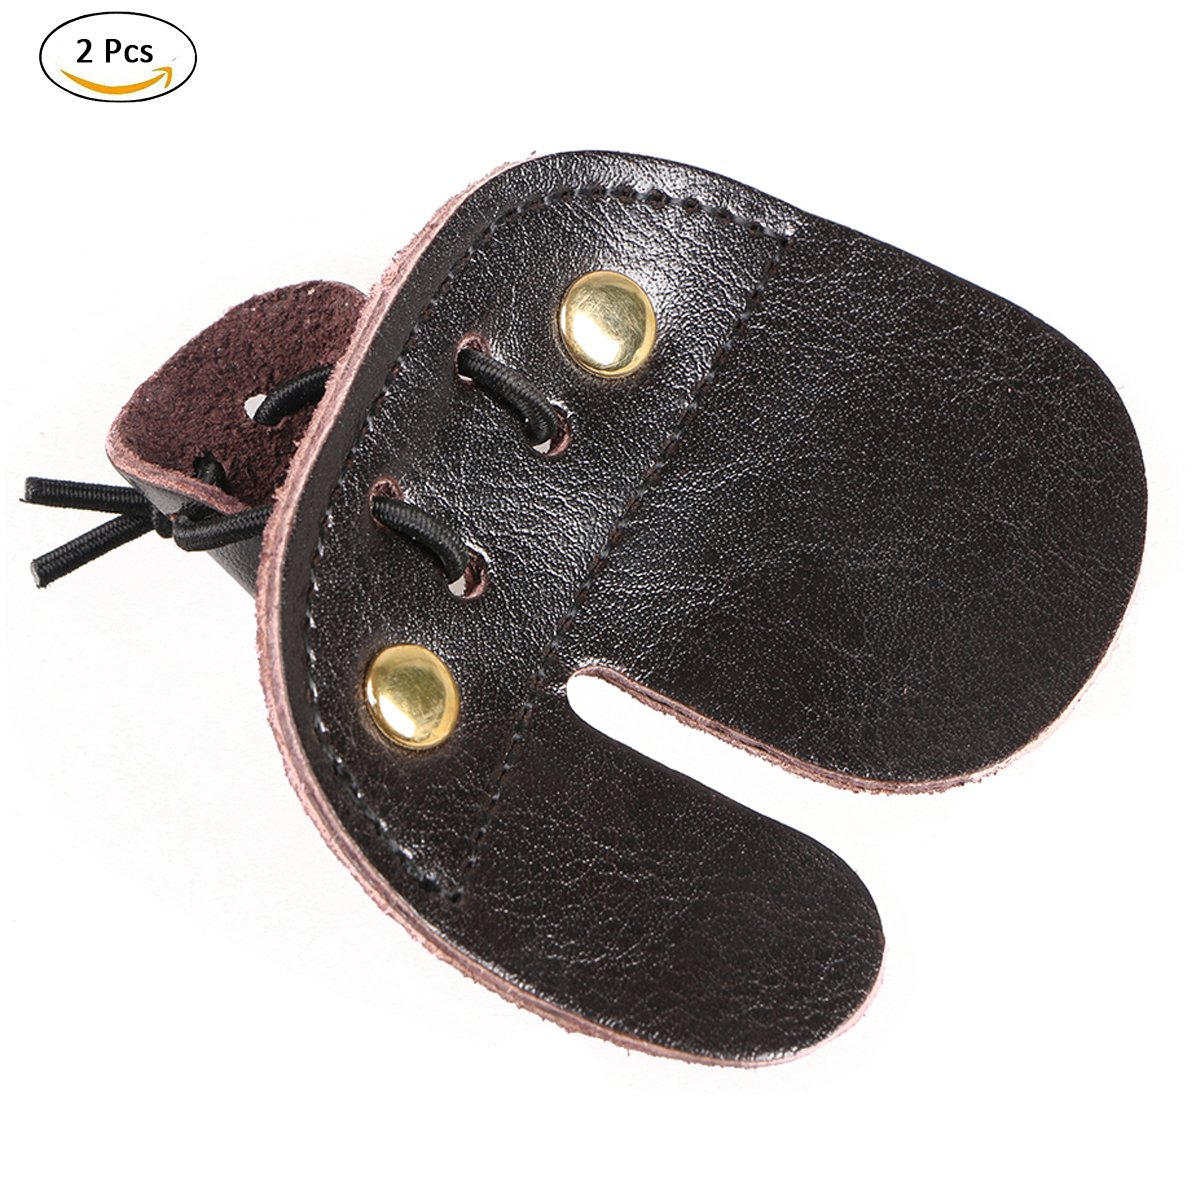 Summer Win 2pcs Cow Leather Archery Finger Tab for Recurve Bows Shooting Hunting Finger Protector